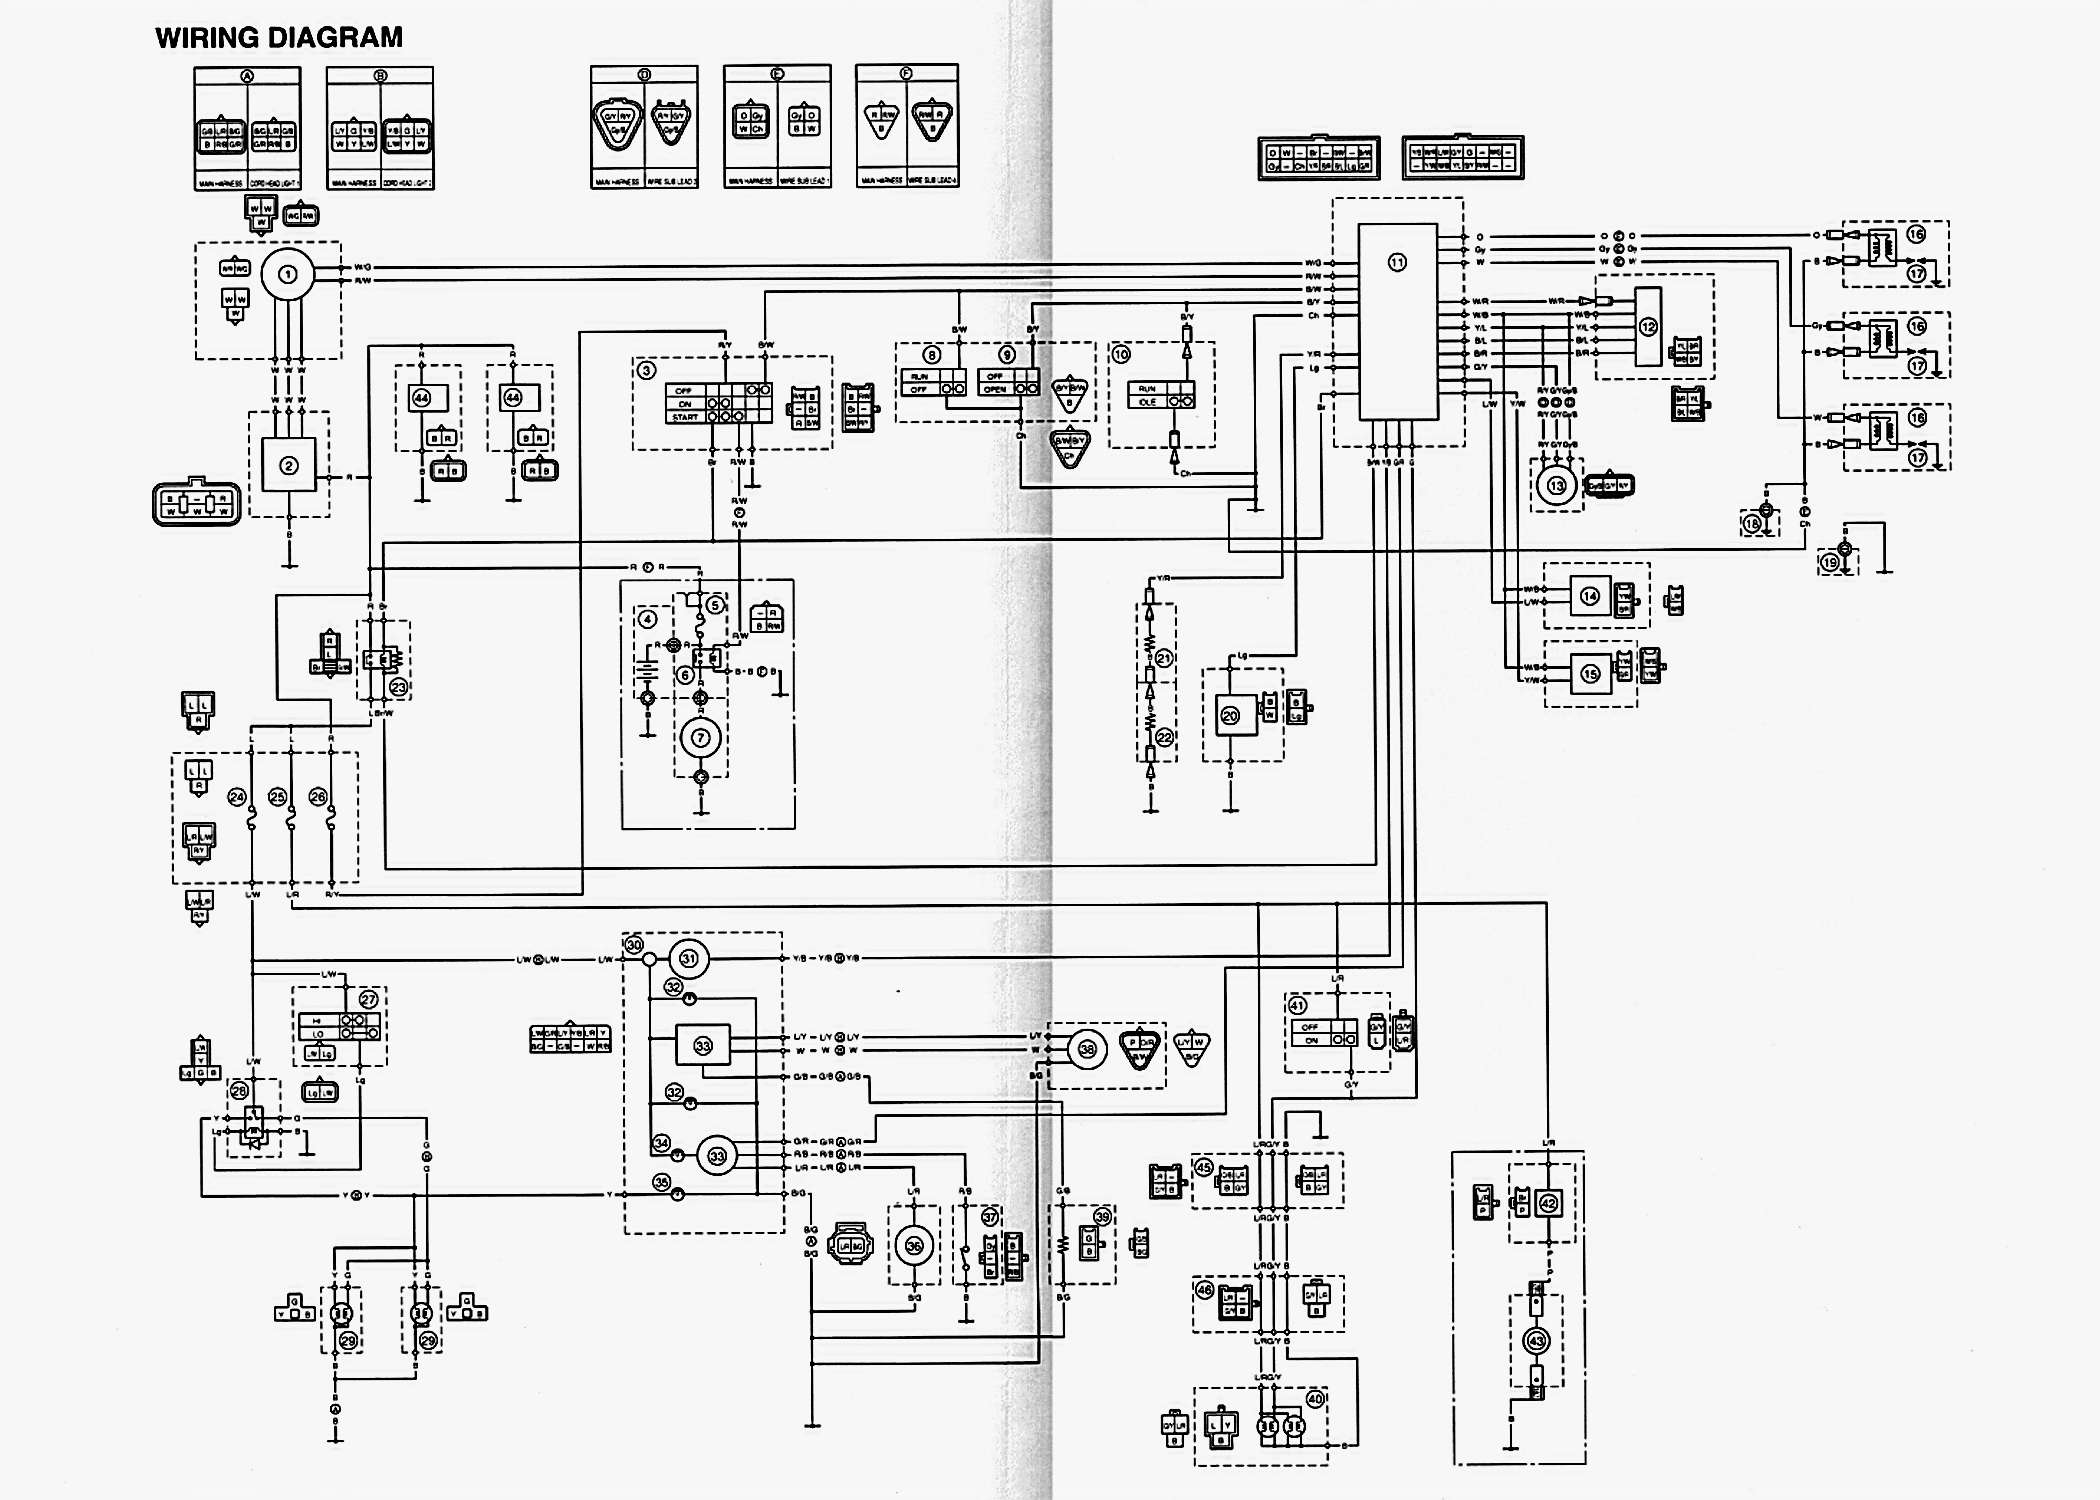 Yamaha 700 Wiring Diagram